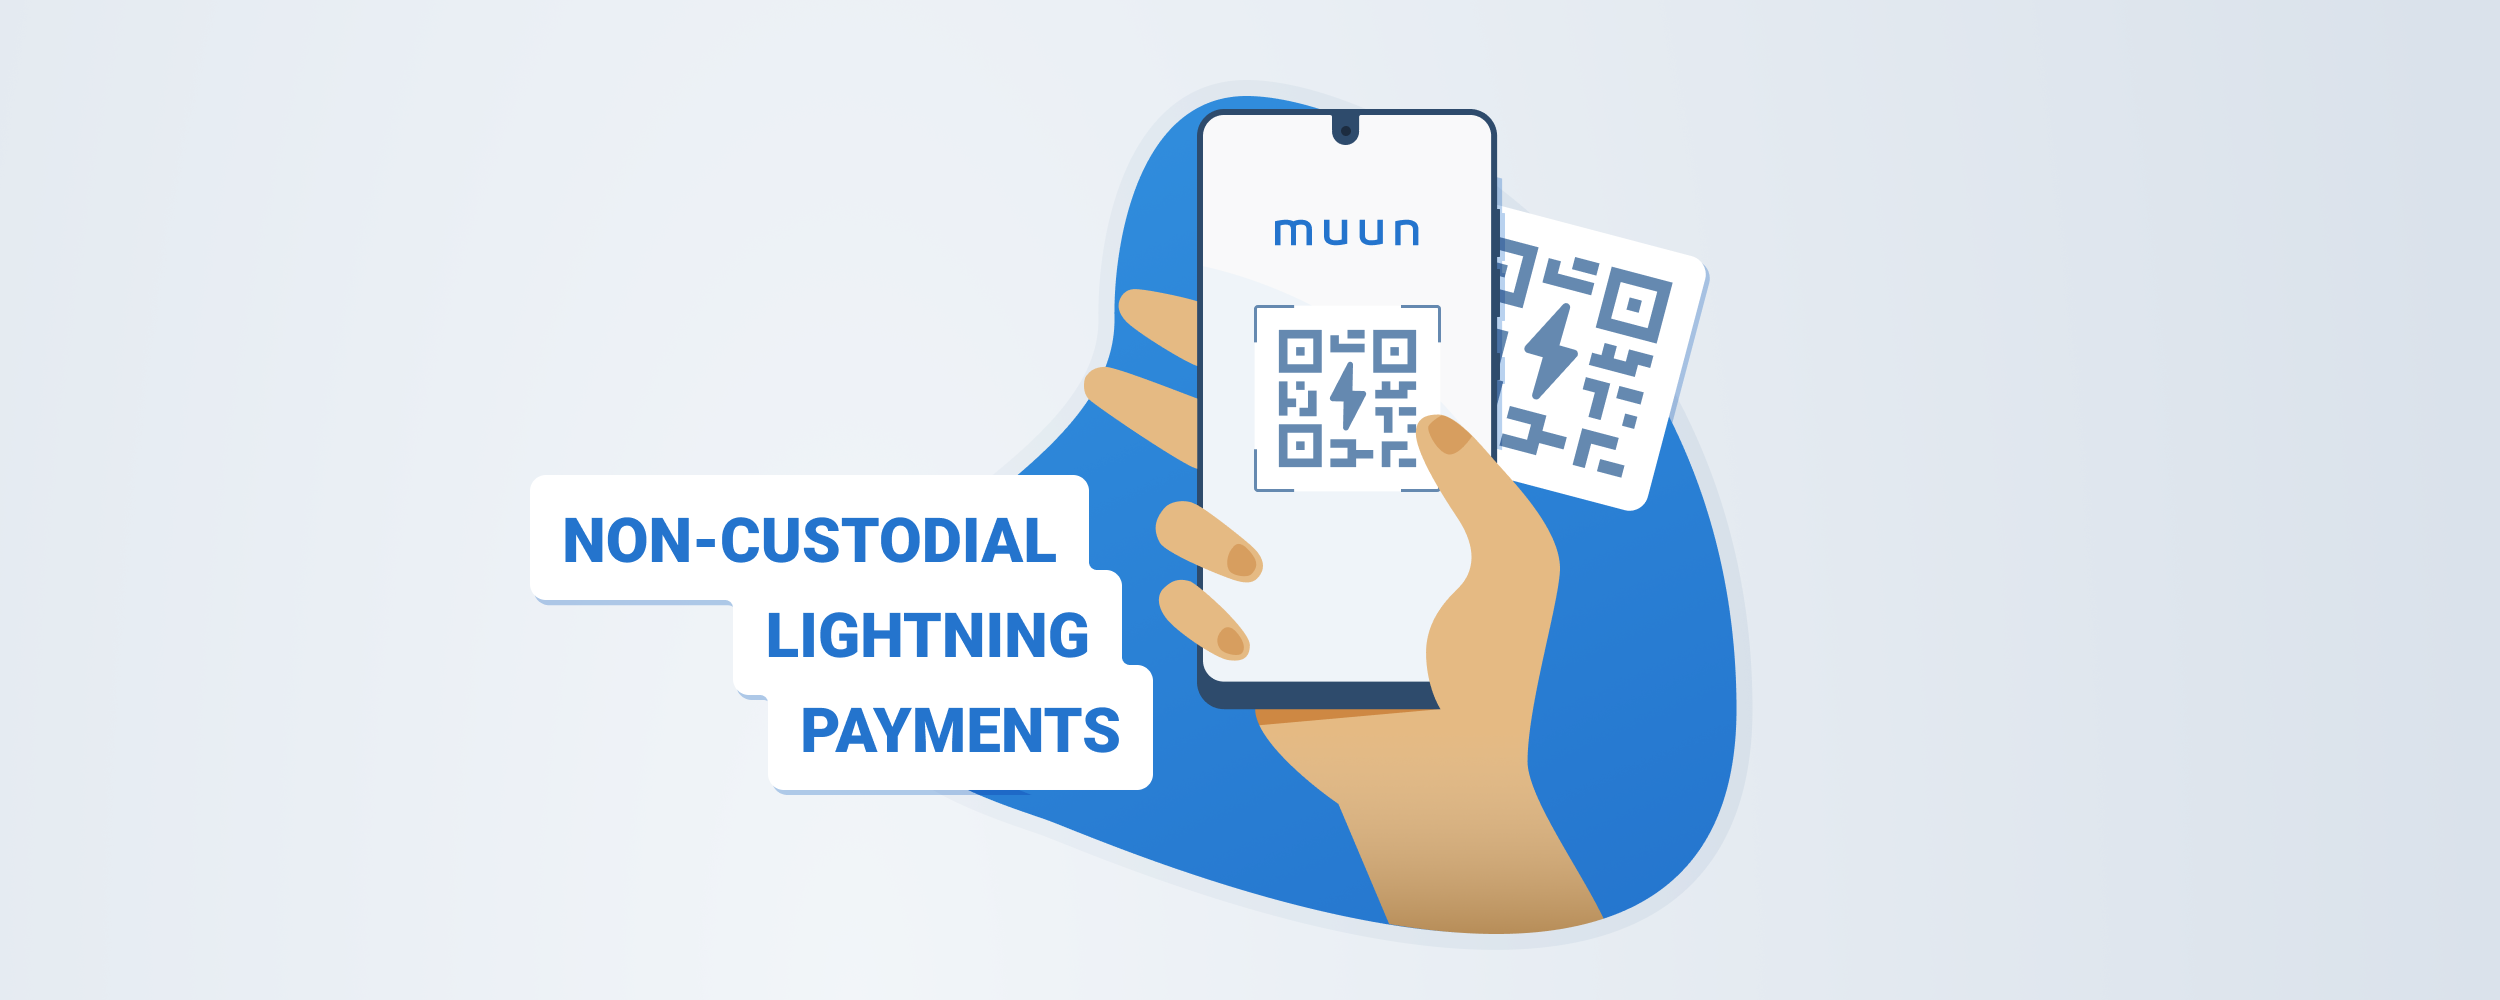 Lightning Payments Easier Than Ever